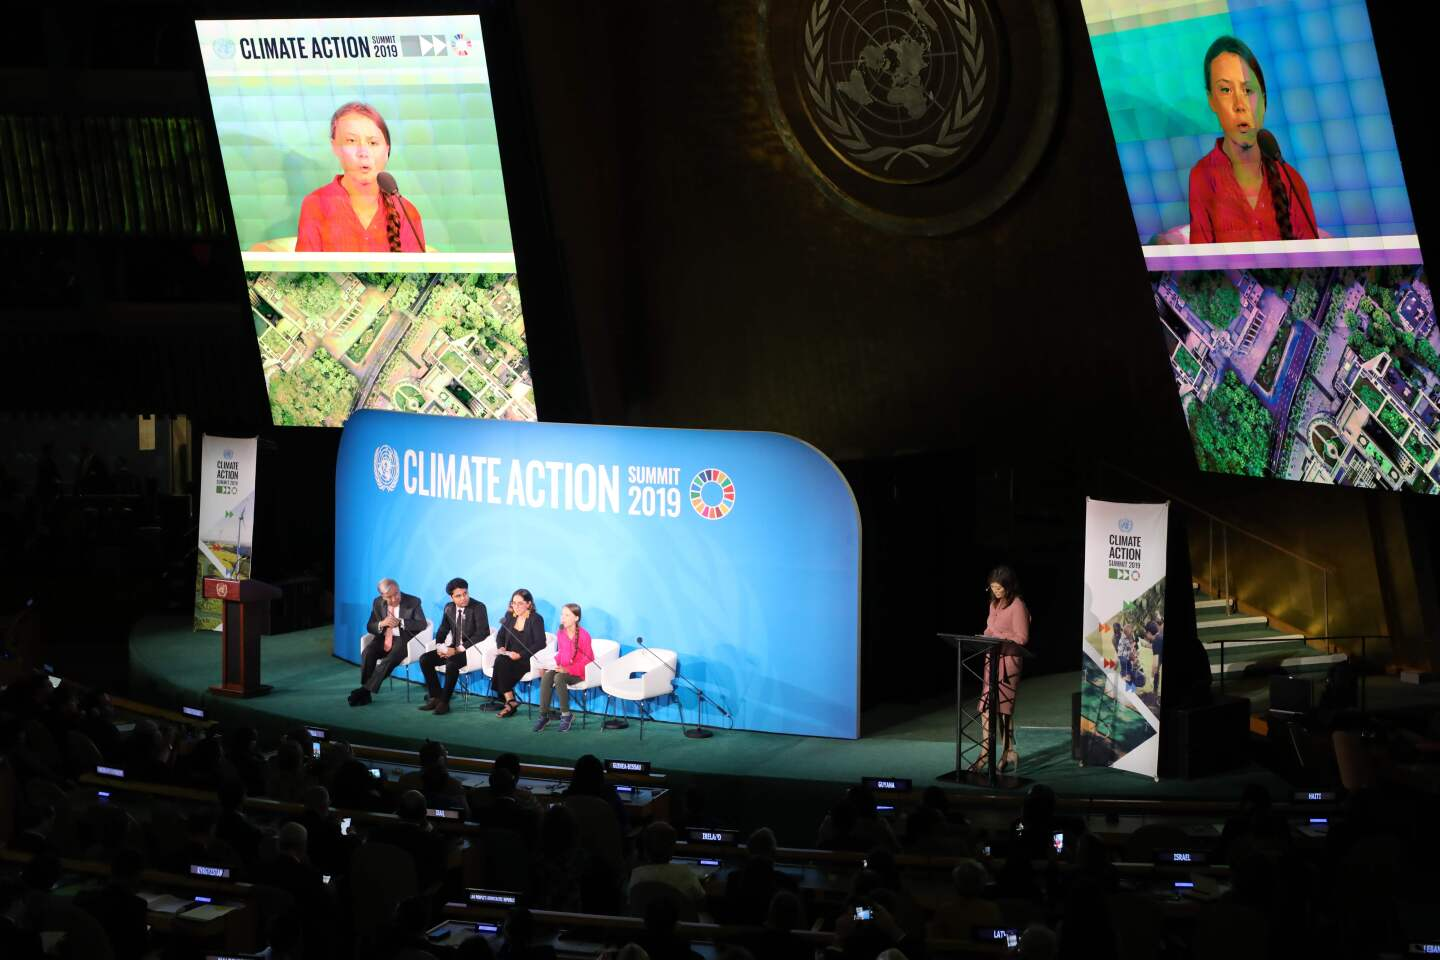 Youth Climate activist Greta Thunberg (R) speaks during the UN Climate Action Summit on September 23, 2019 at the United Nations Headquarters in New York City. (Photo by Ludovic MARIN / AFP)LUDOVIC MARIN/AFP/Getty Images ** OUTS - ELSENT, FPG, CM - OUTS * NM, PH, VA if sourced by CT, LA or MoD **